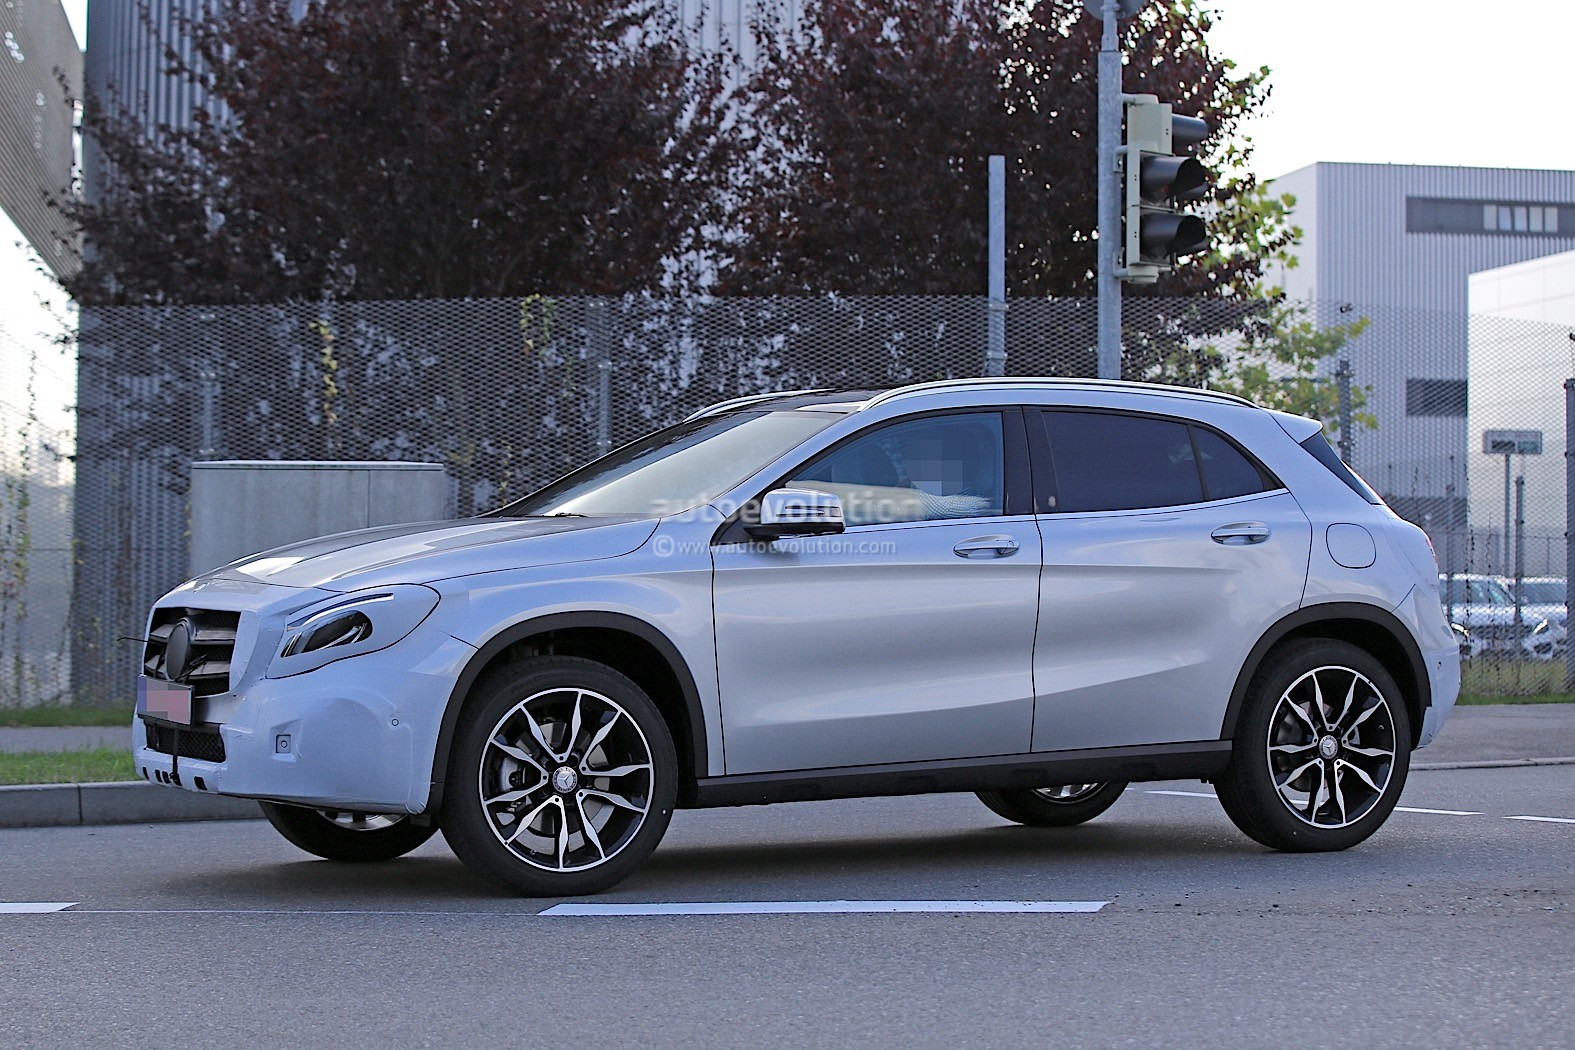 2018 Mercedes Benz GLA Facelift Caught With Much Higher